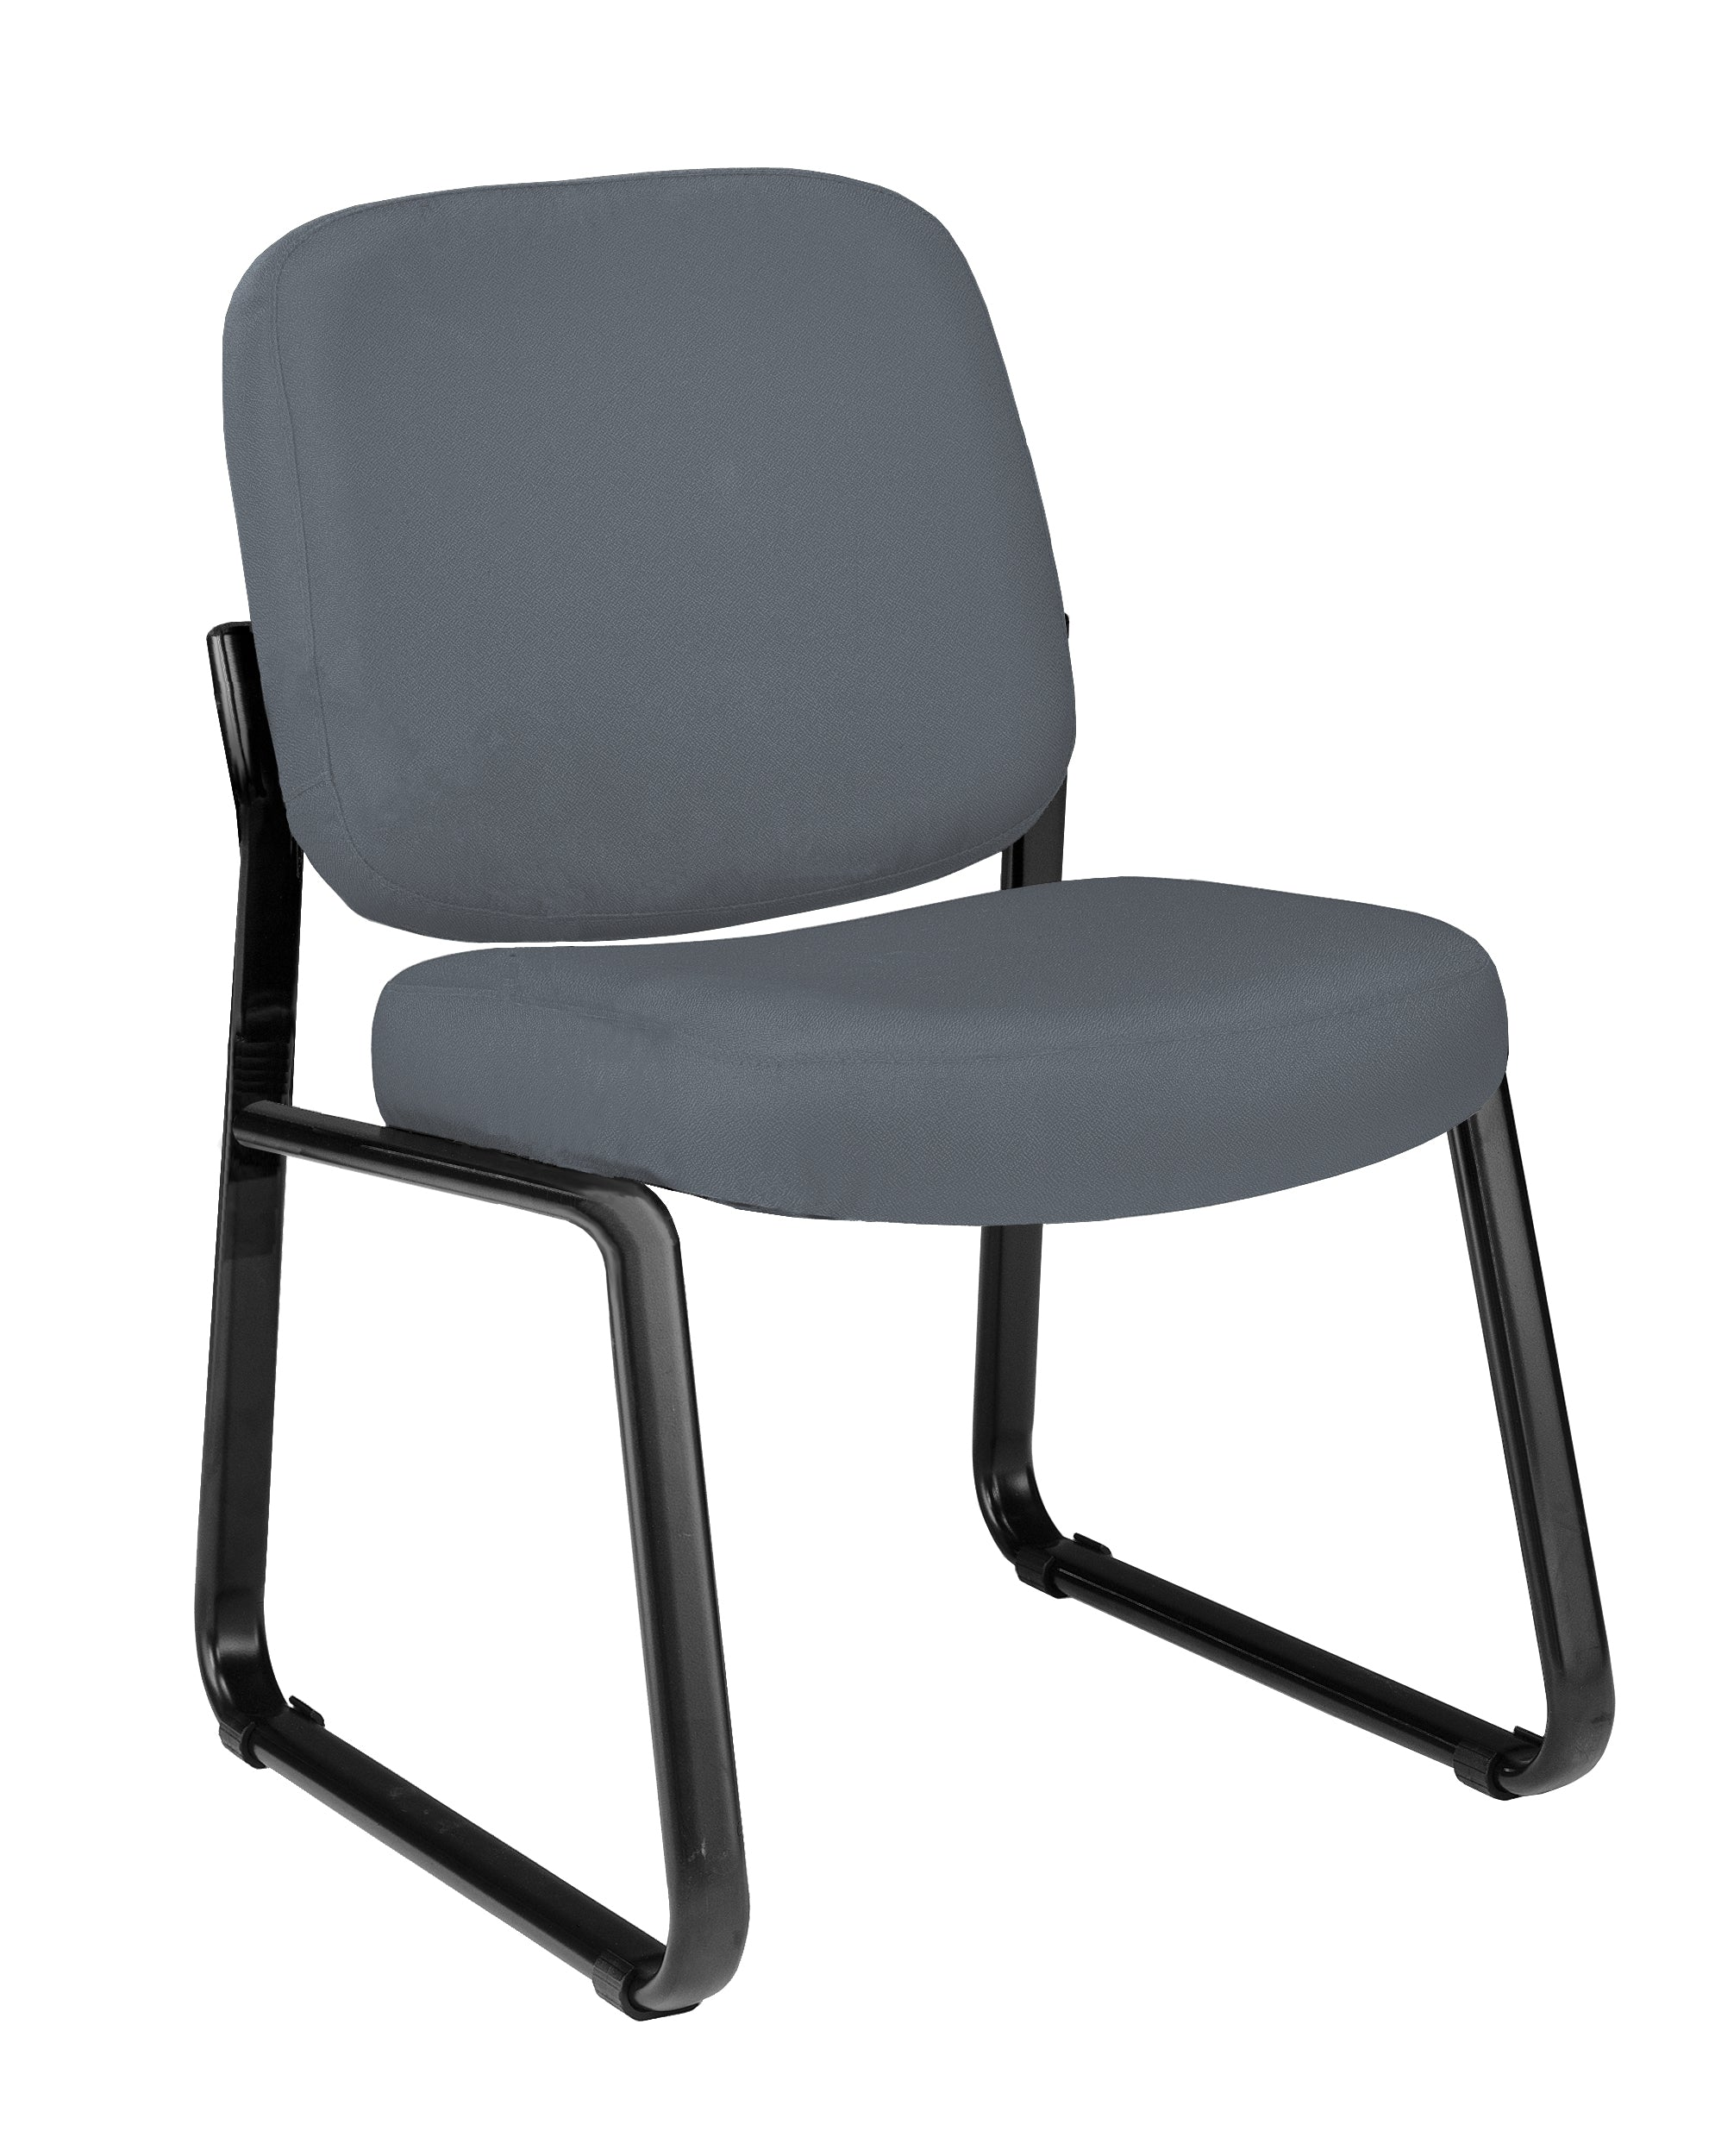 Ofminc Model 405 Armless Guest / Reception Chair